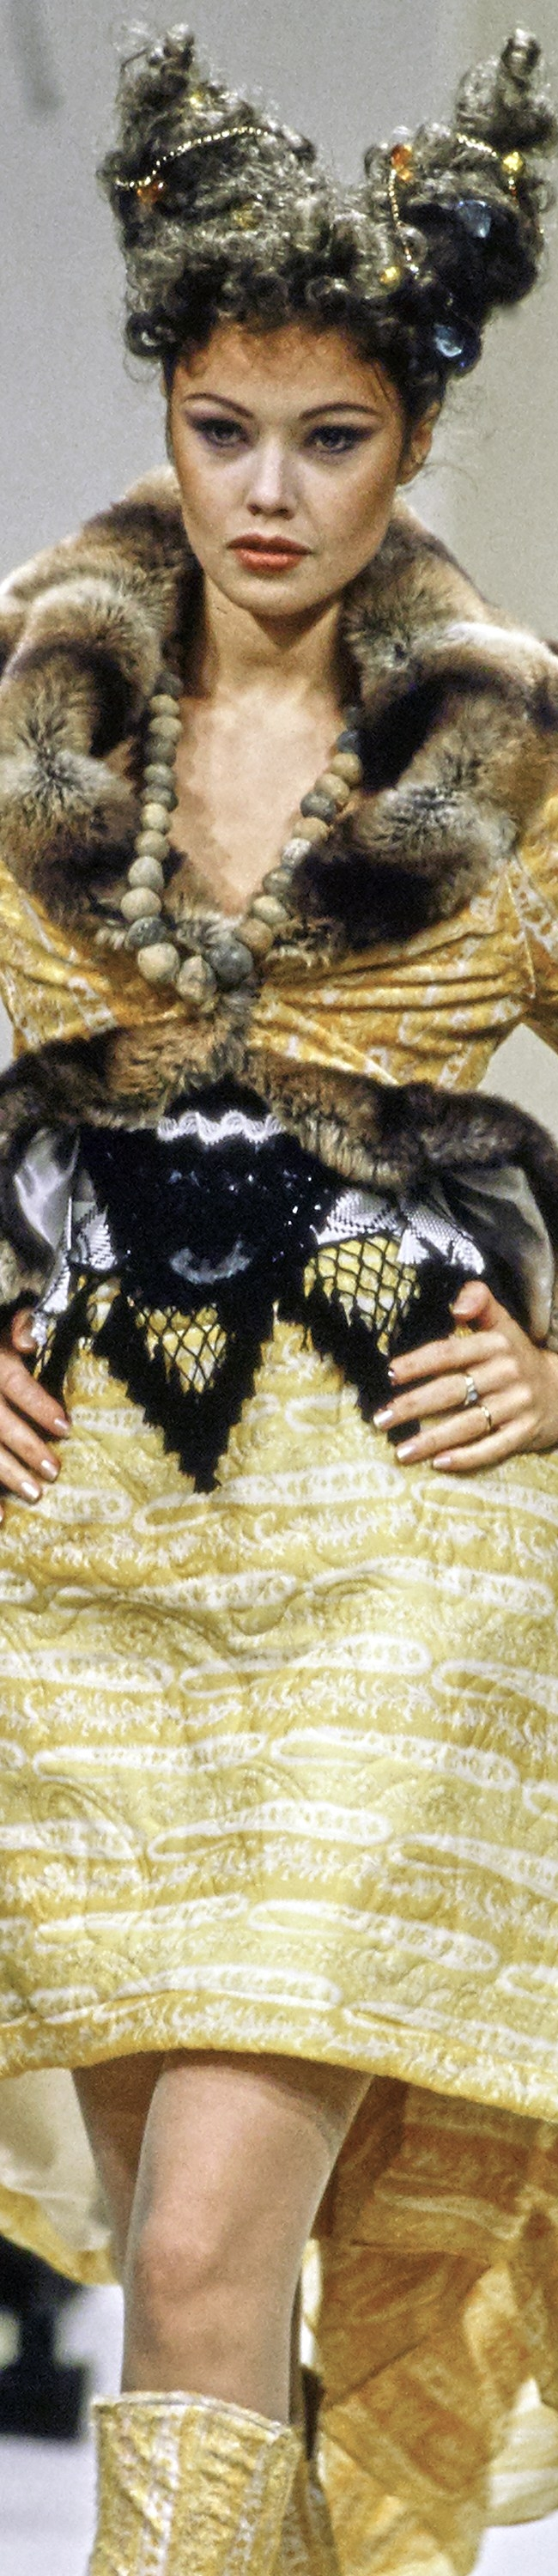 Andreas Kronthaler for Vivienne Westwood Fall 1994